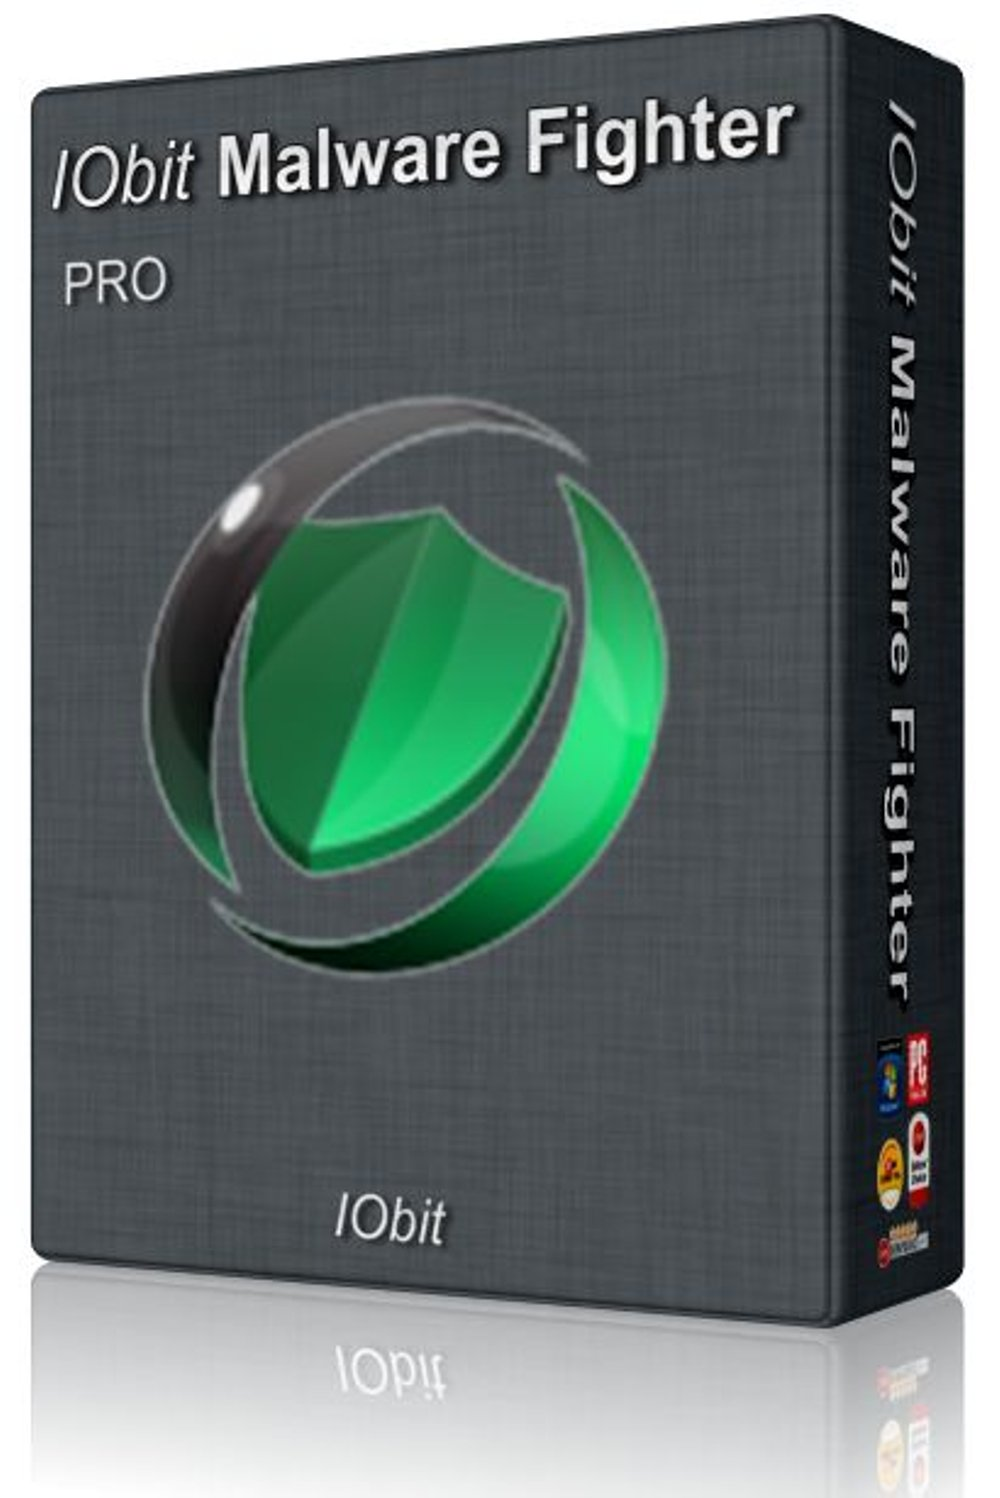 iobit malware fighter pro torrent